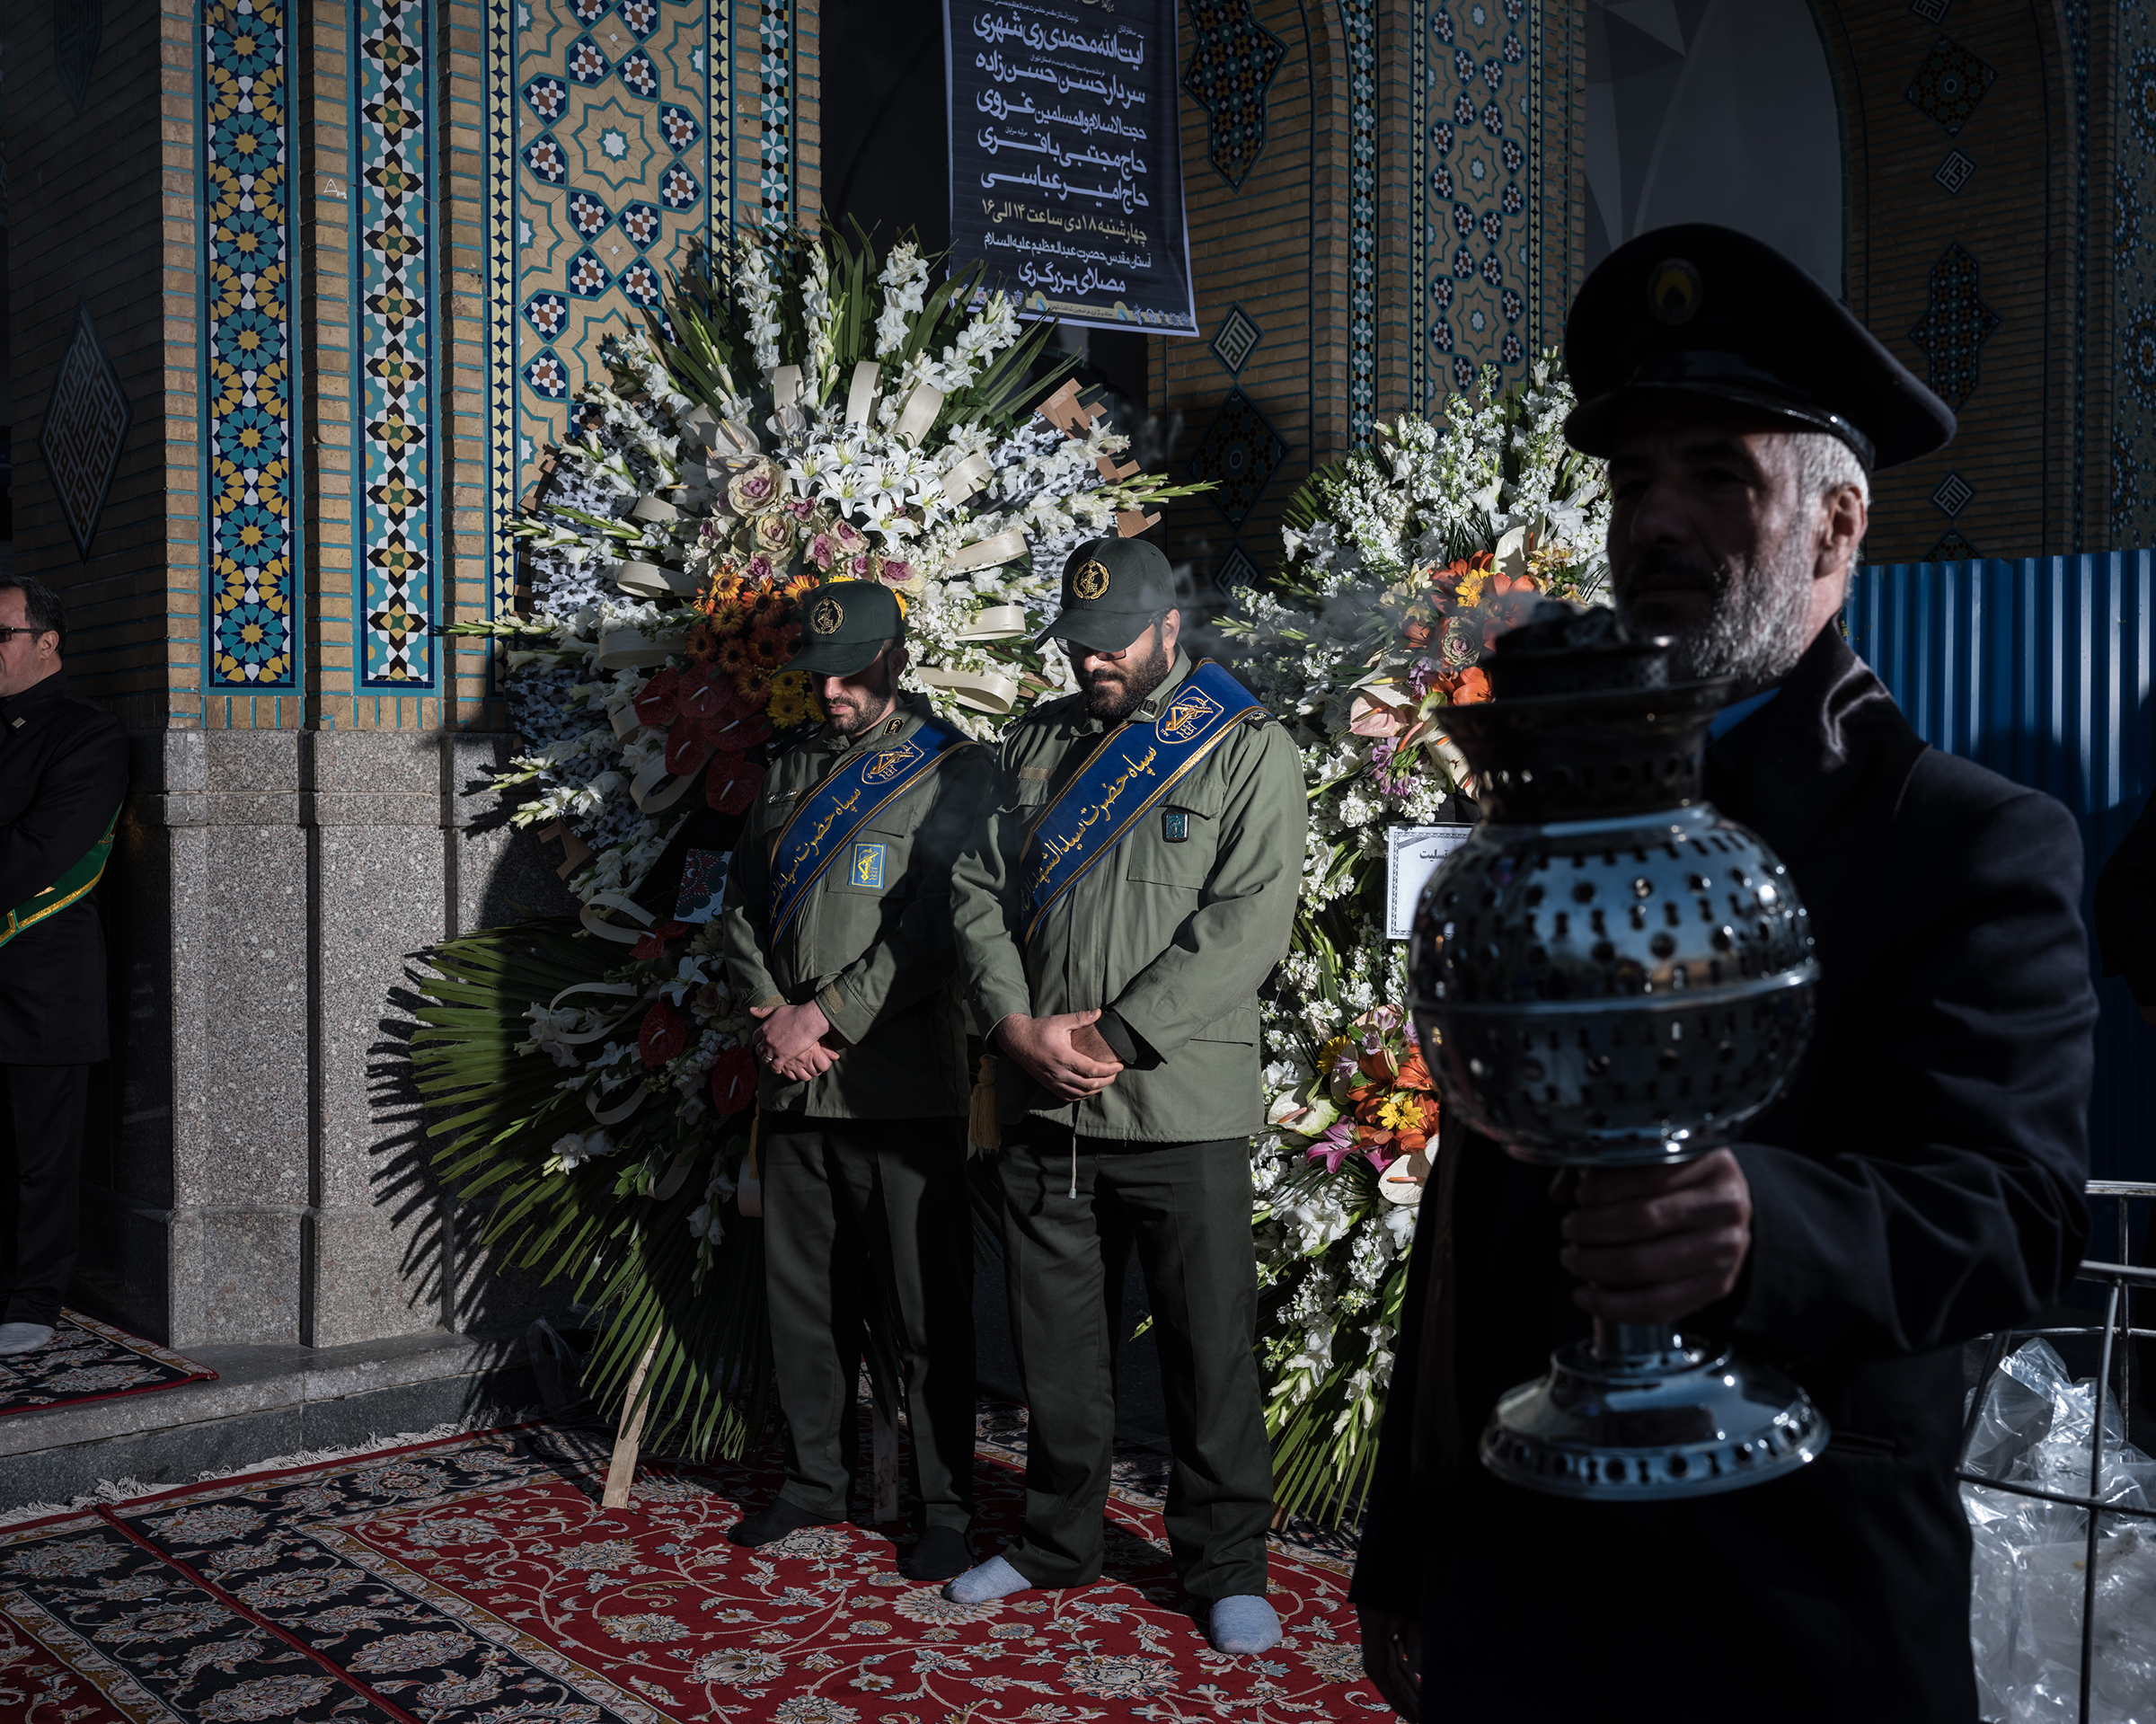 At the shrine to Shah Abdol Azim in Tehran, a special ceremony was held on Jan. 8.